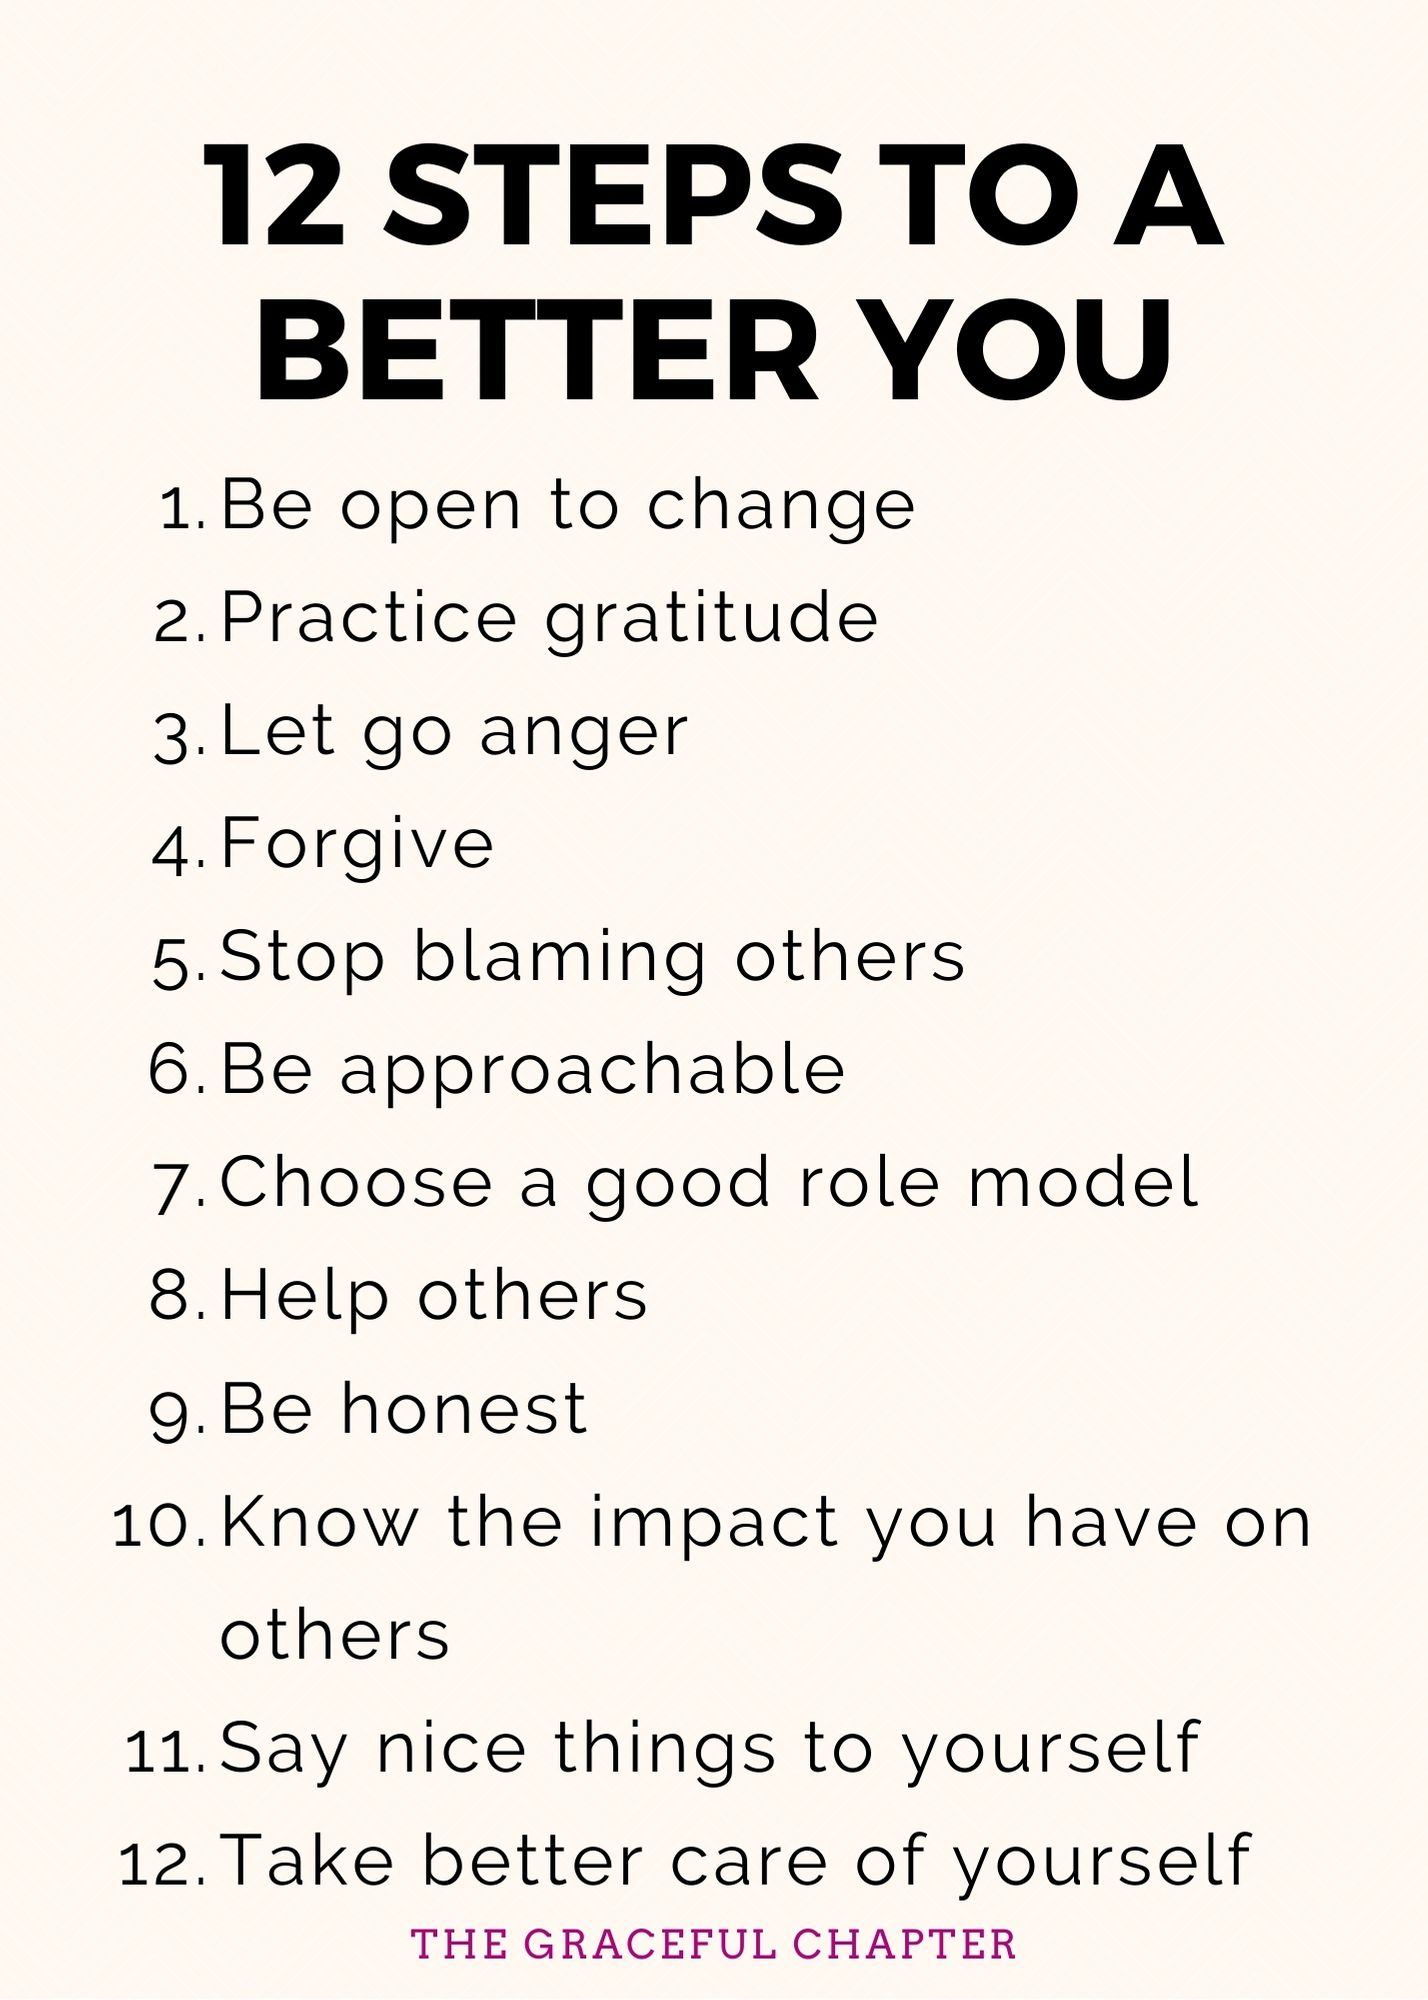 12 steps to a better you